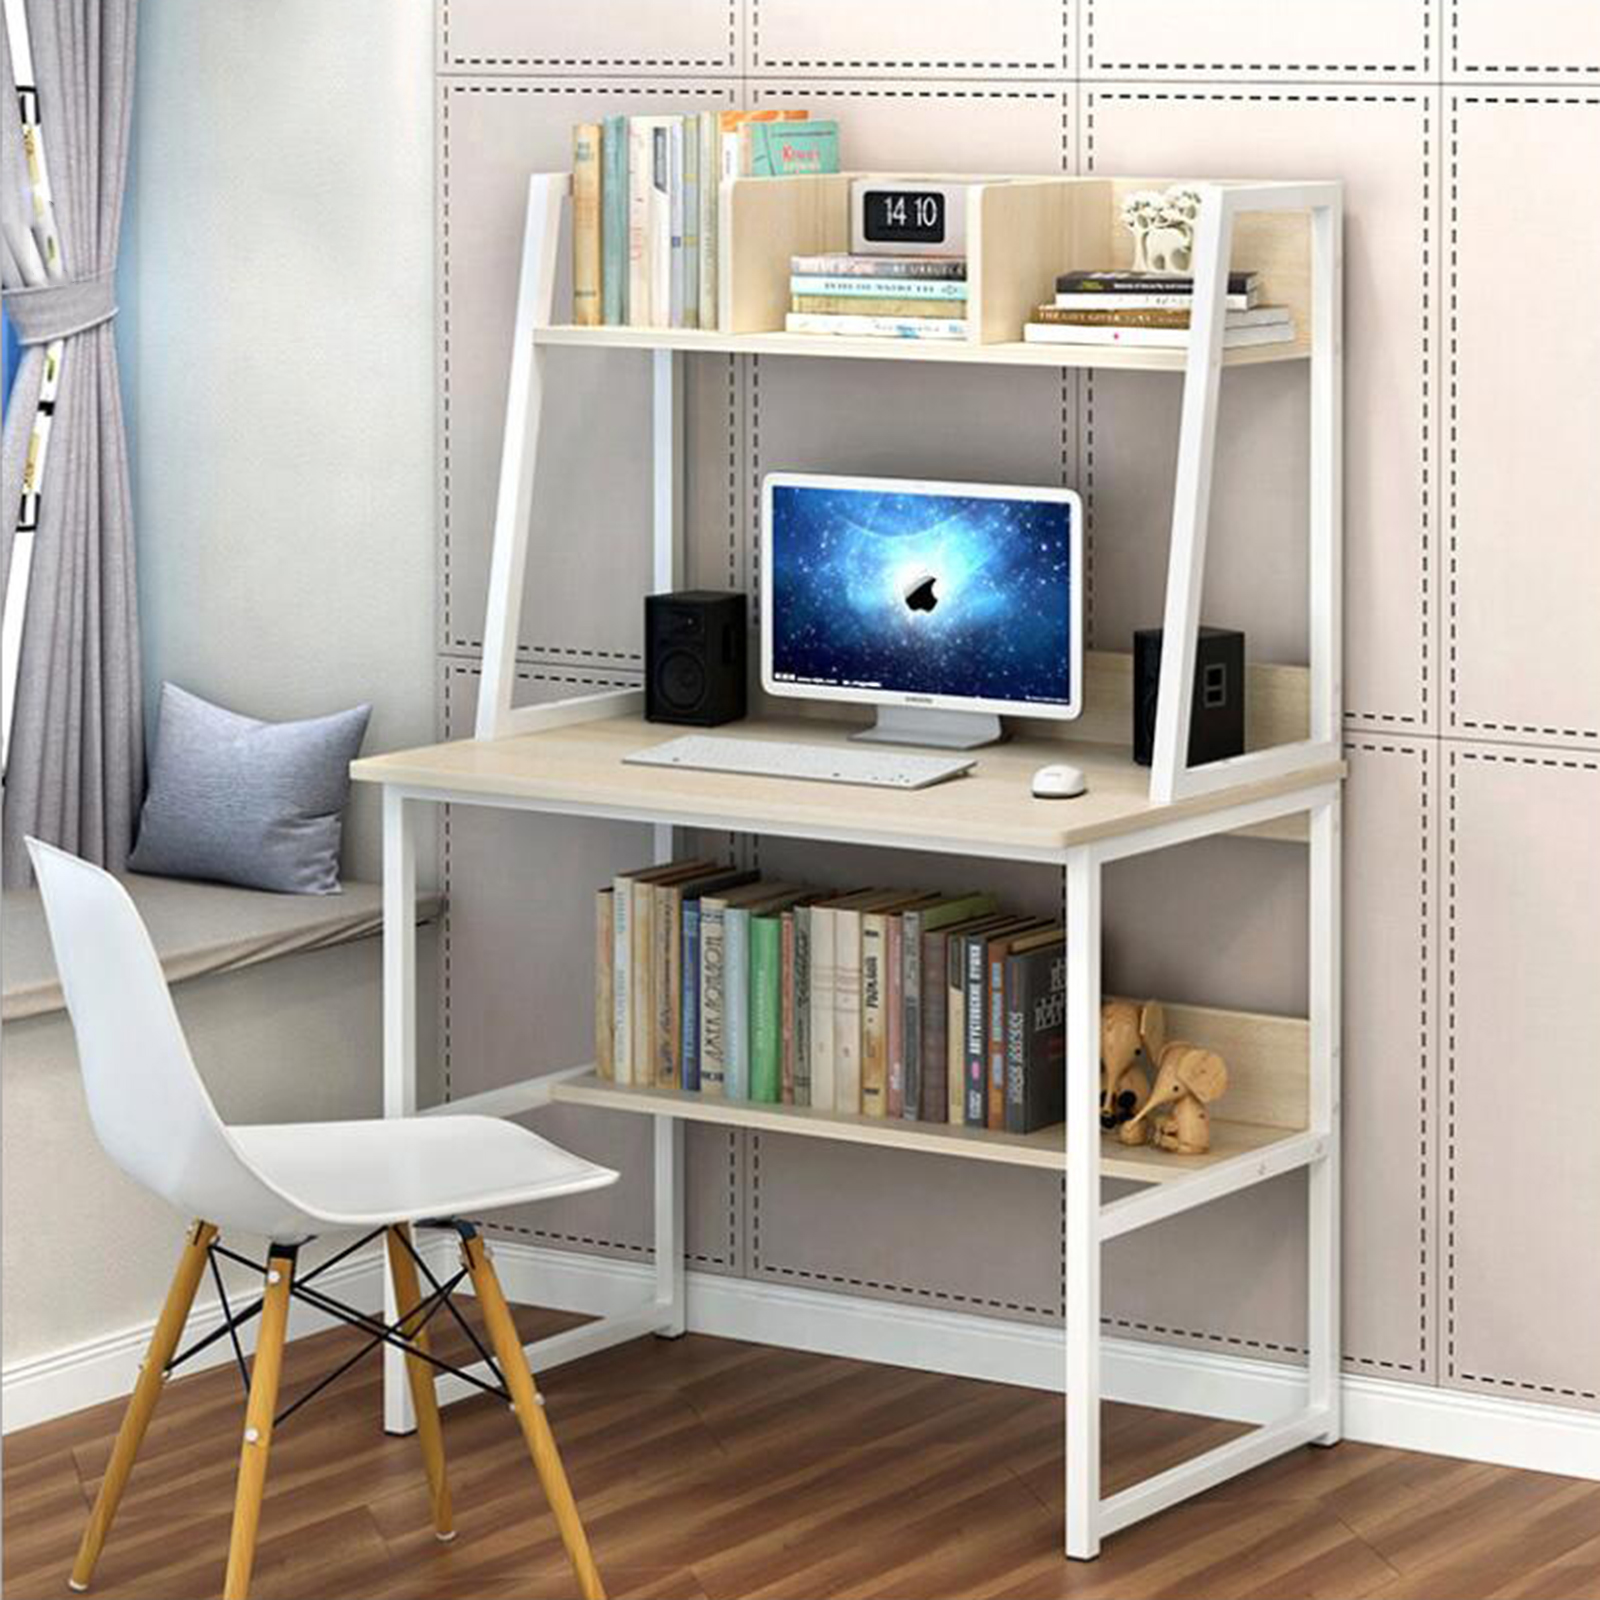 Multi-Function Computer Desk Furniture China Home School Office Table Gaming Table With Shelf For Books